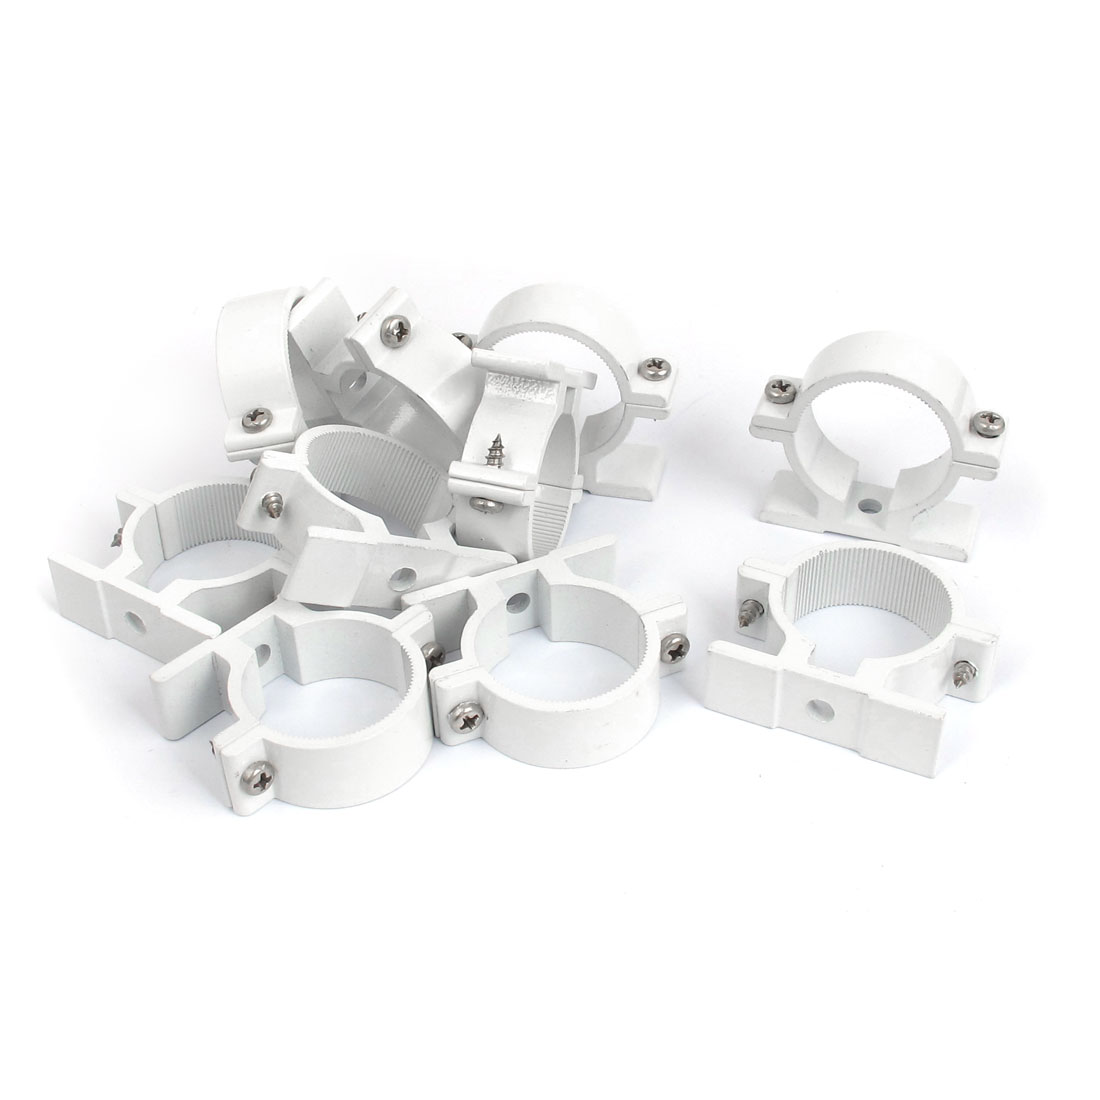 10 Pcs 32mm Dia Water Supply Pipe Clamps Screw Clips Fitting White